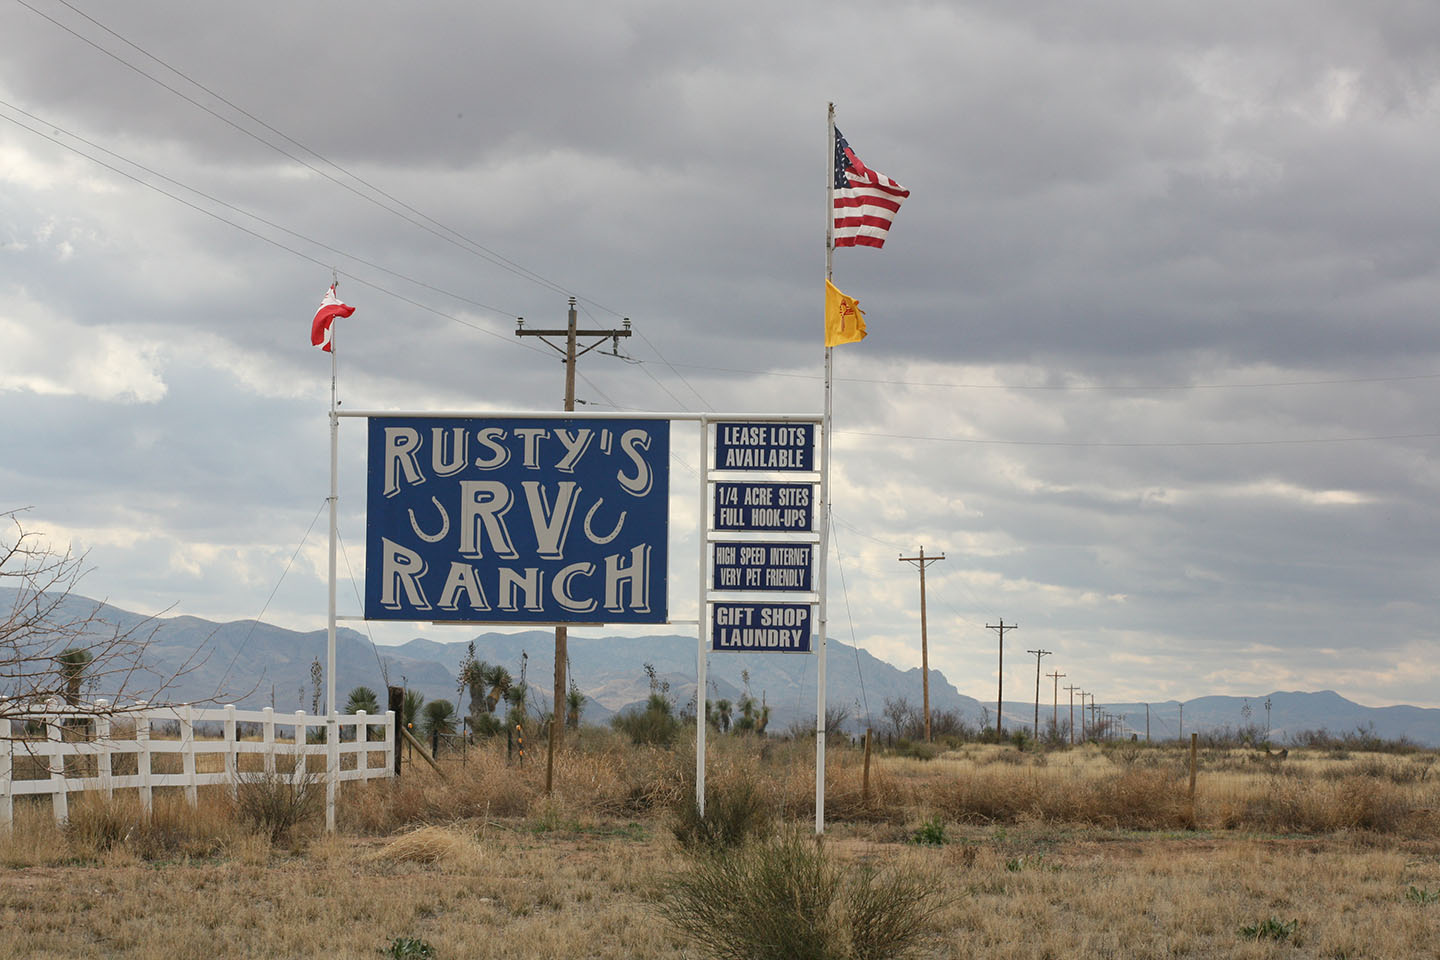 Roadside sign for Rusty's RV Ranch